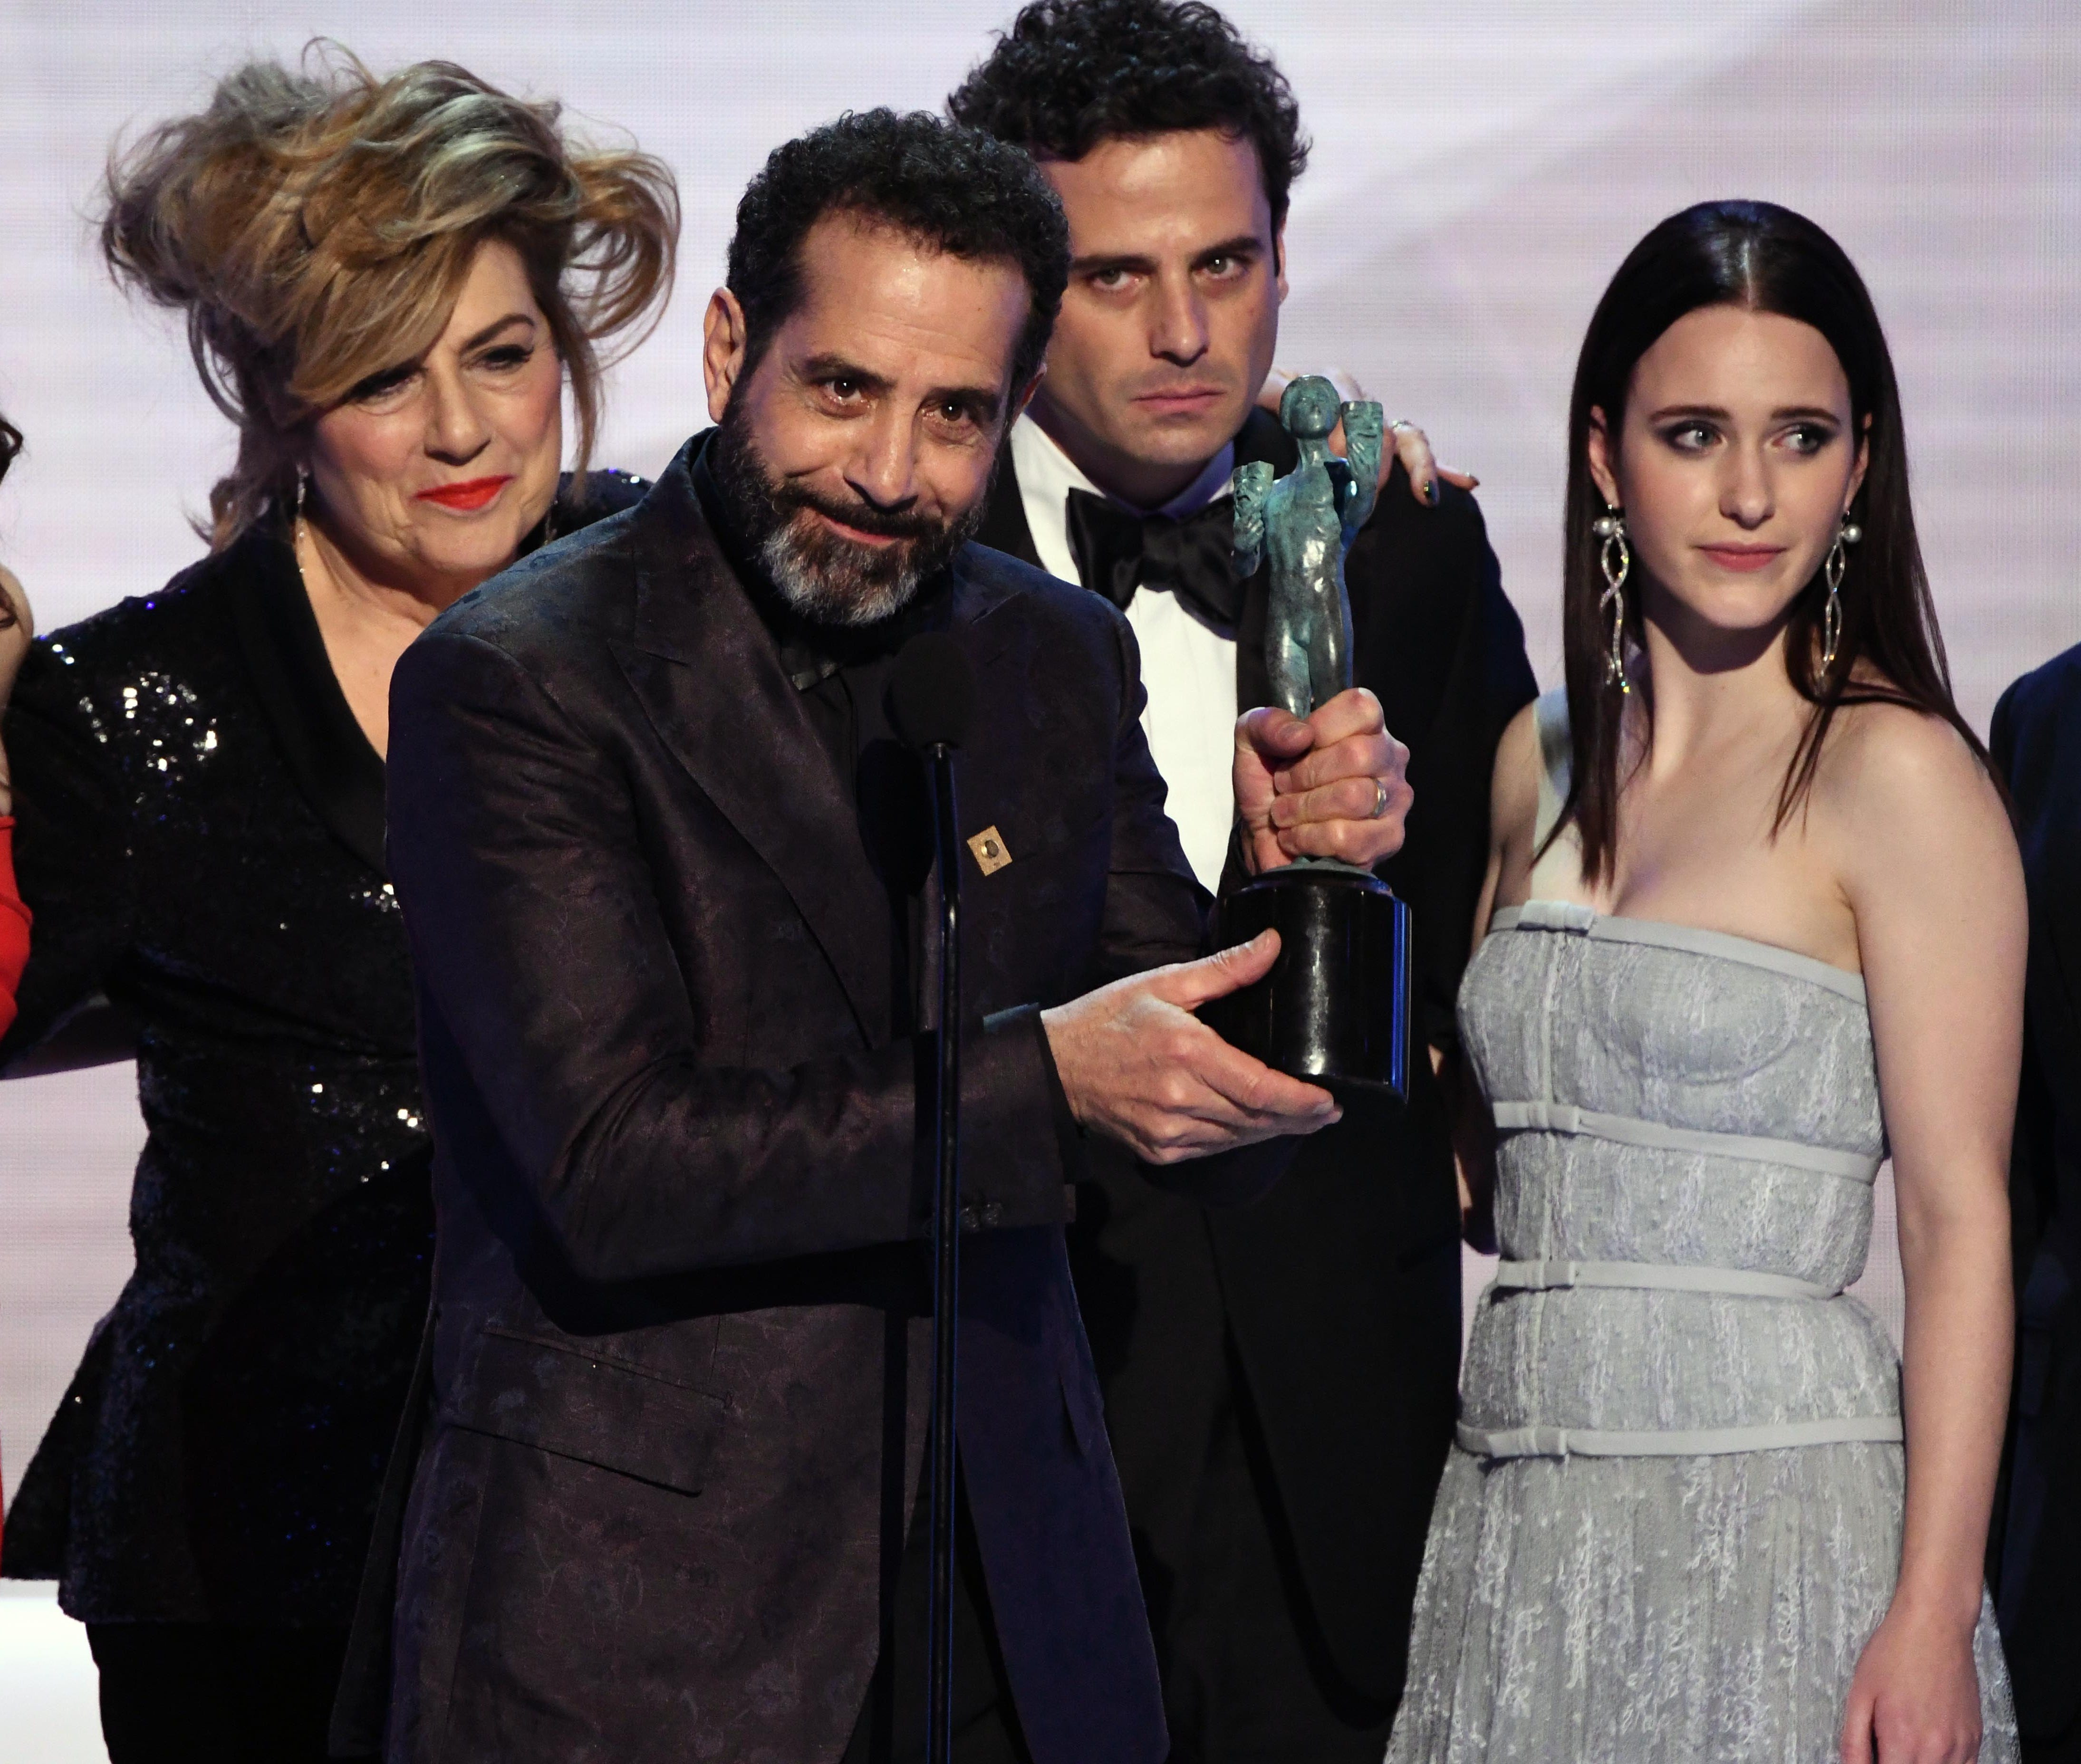 """Tony Shalhoub, center, and the cast of """"The Marvelous Mrs. Maisel"""" accept the award for outstanding performance by an ensemble in a comedy series."""